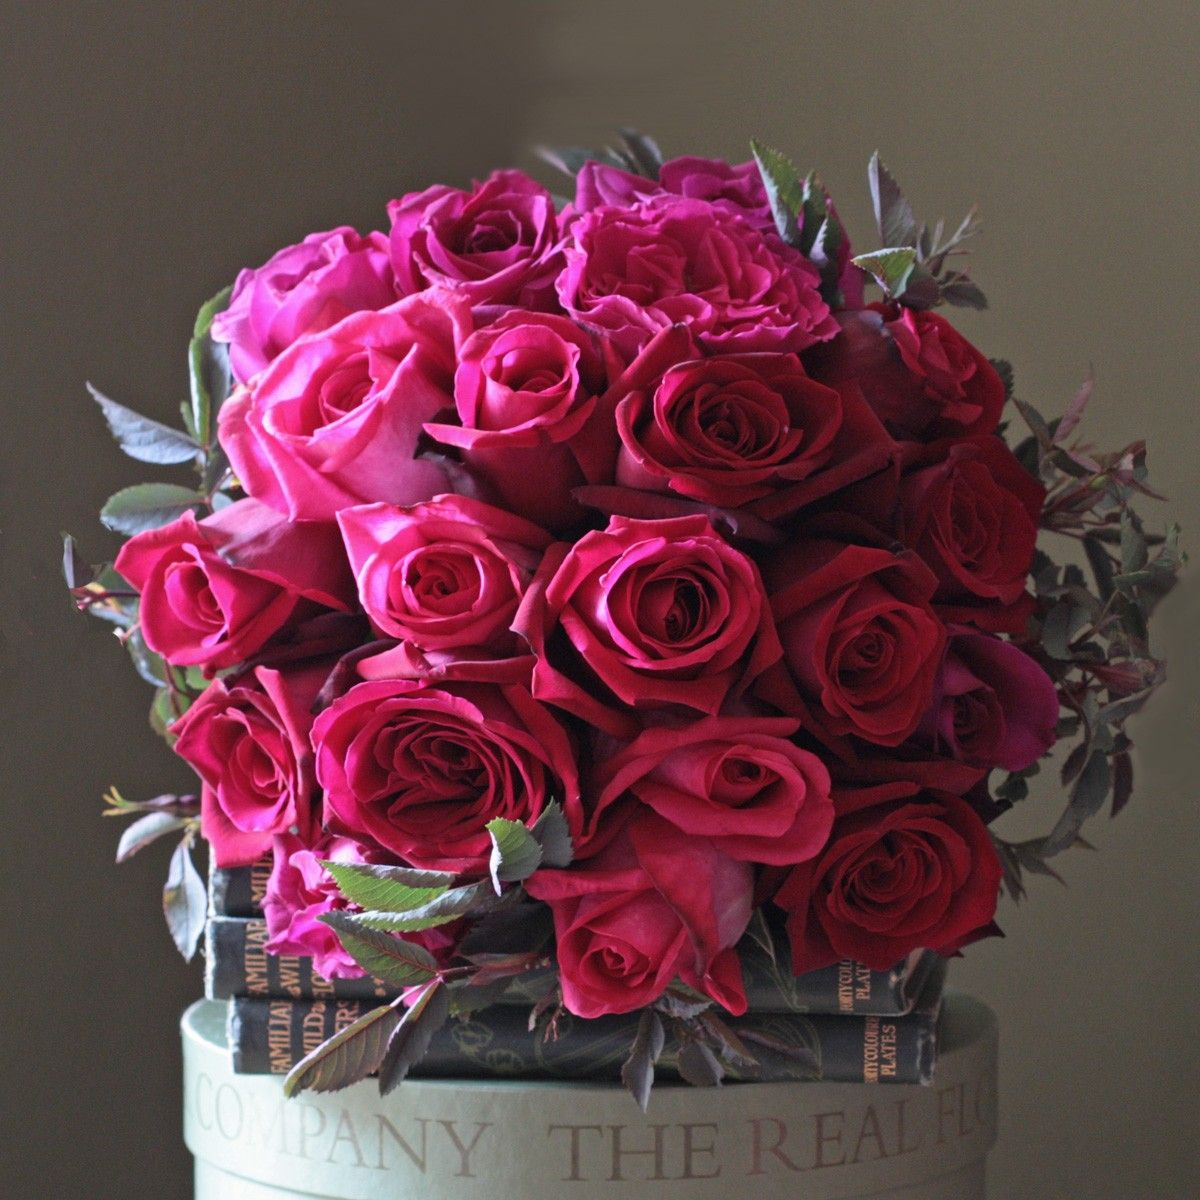 hot pink garden rose bouquets | The Real Flower Company Ruby 40 ...